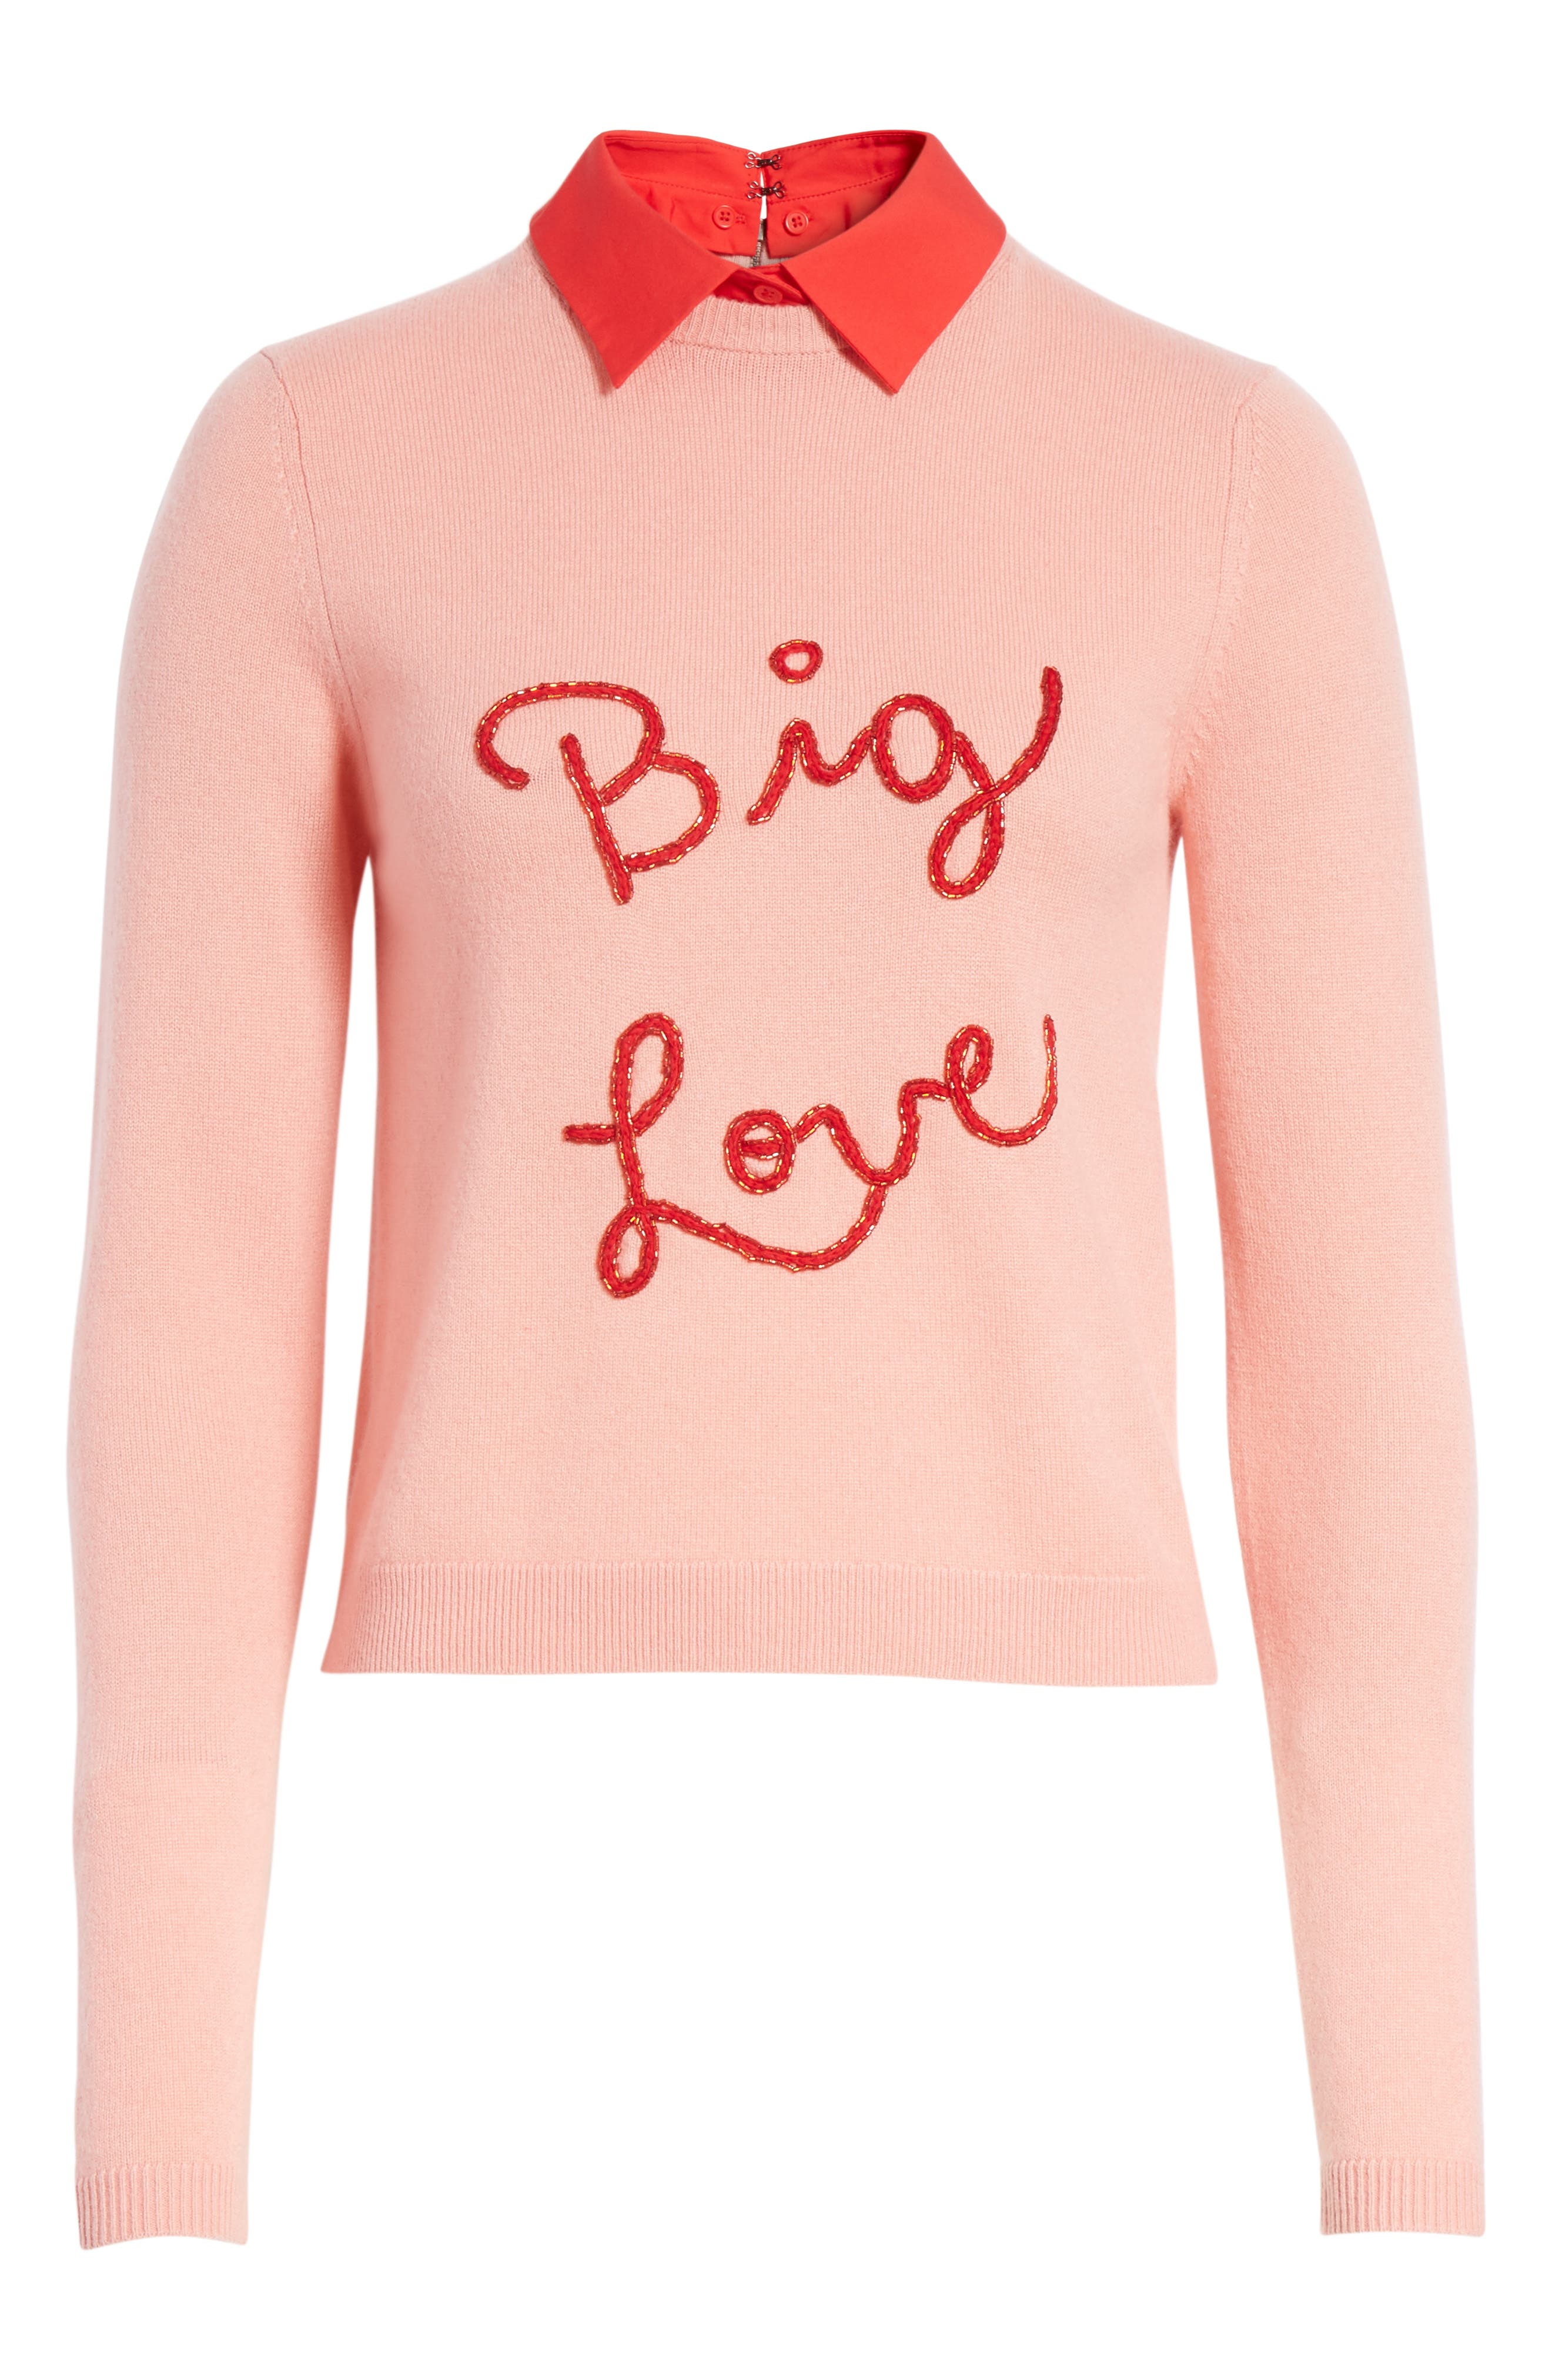 Big Love Embroidered Cashmere Sweater,                             Alternate thumbnail 6, color,                             Millennial Pink/ Apple